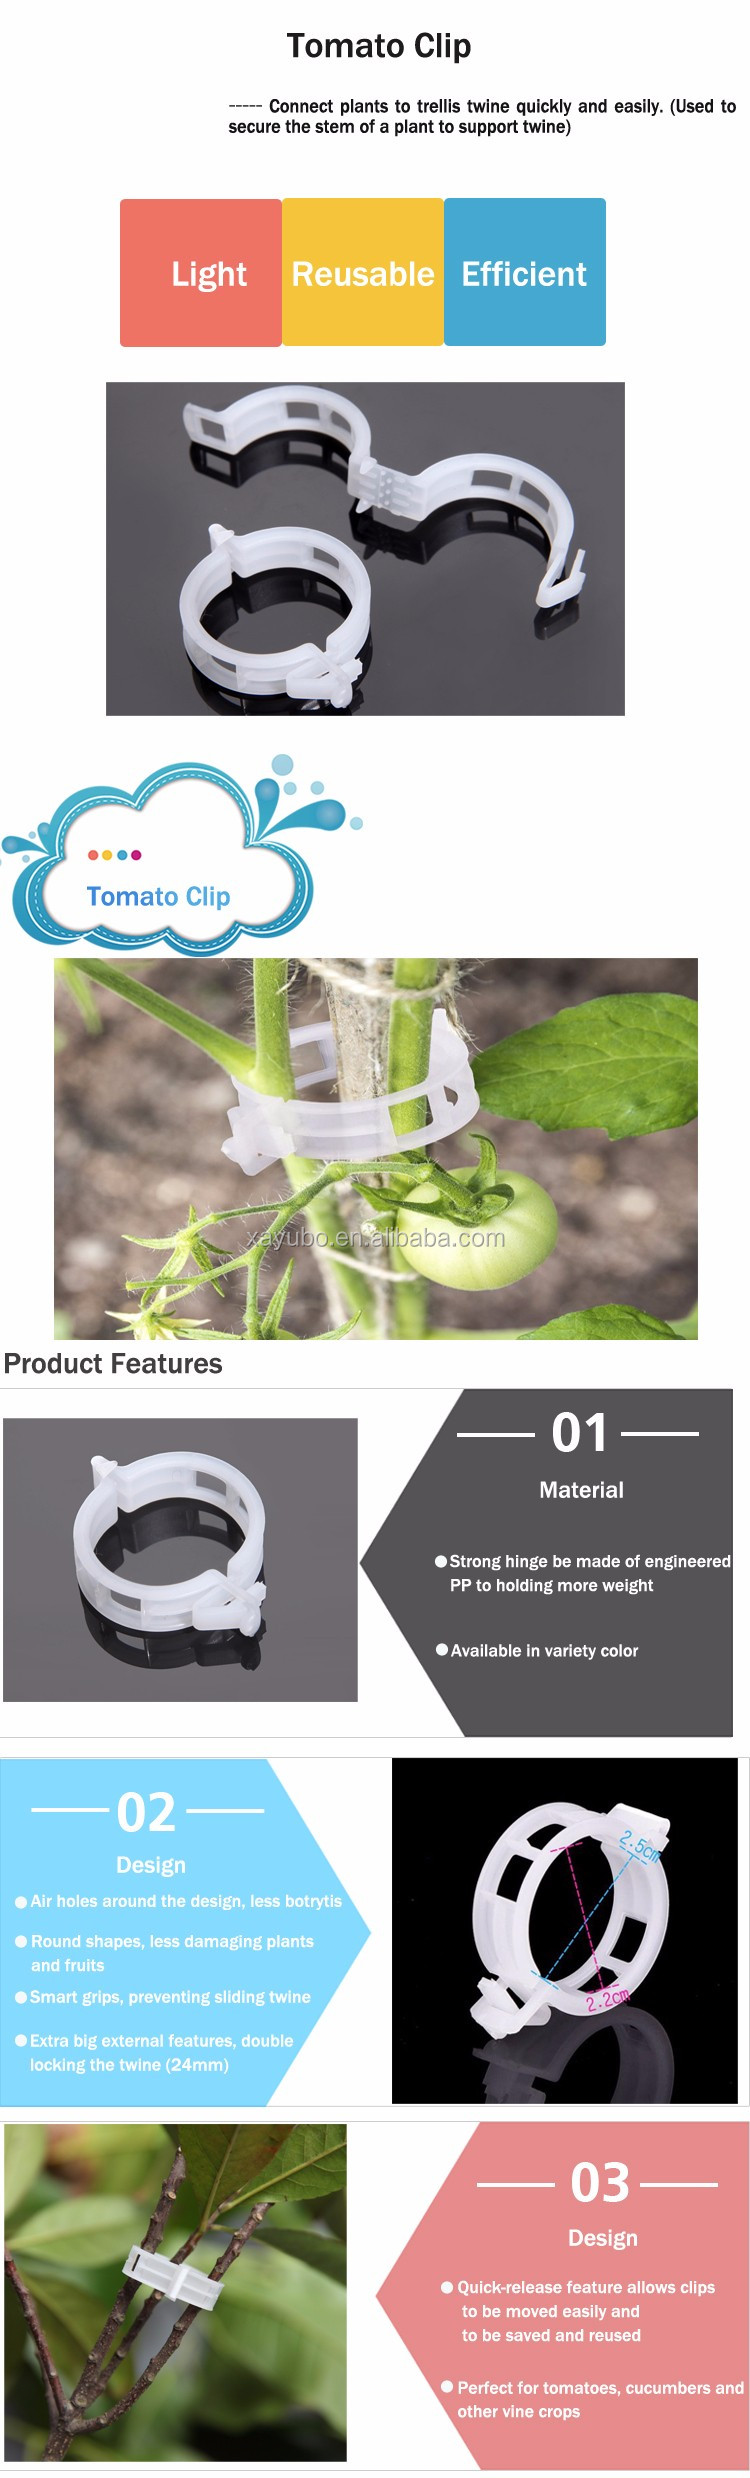 hot sale good quality plastic tomato support clip for greenhouse